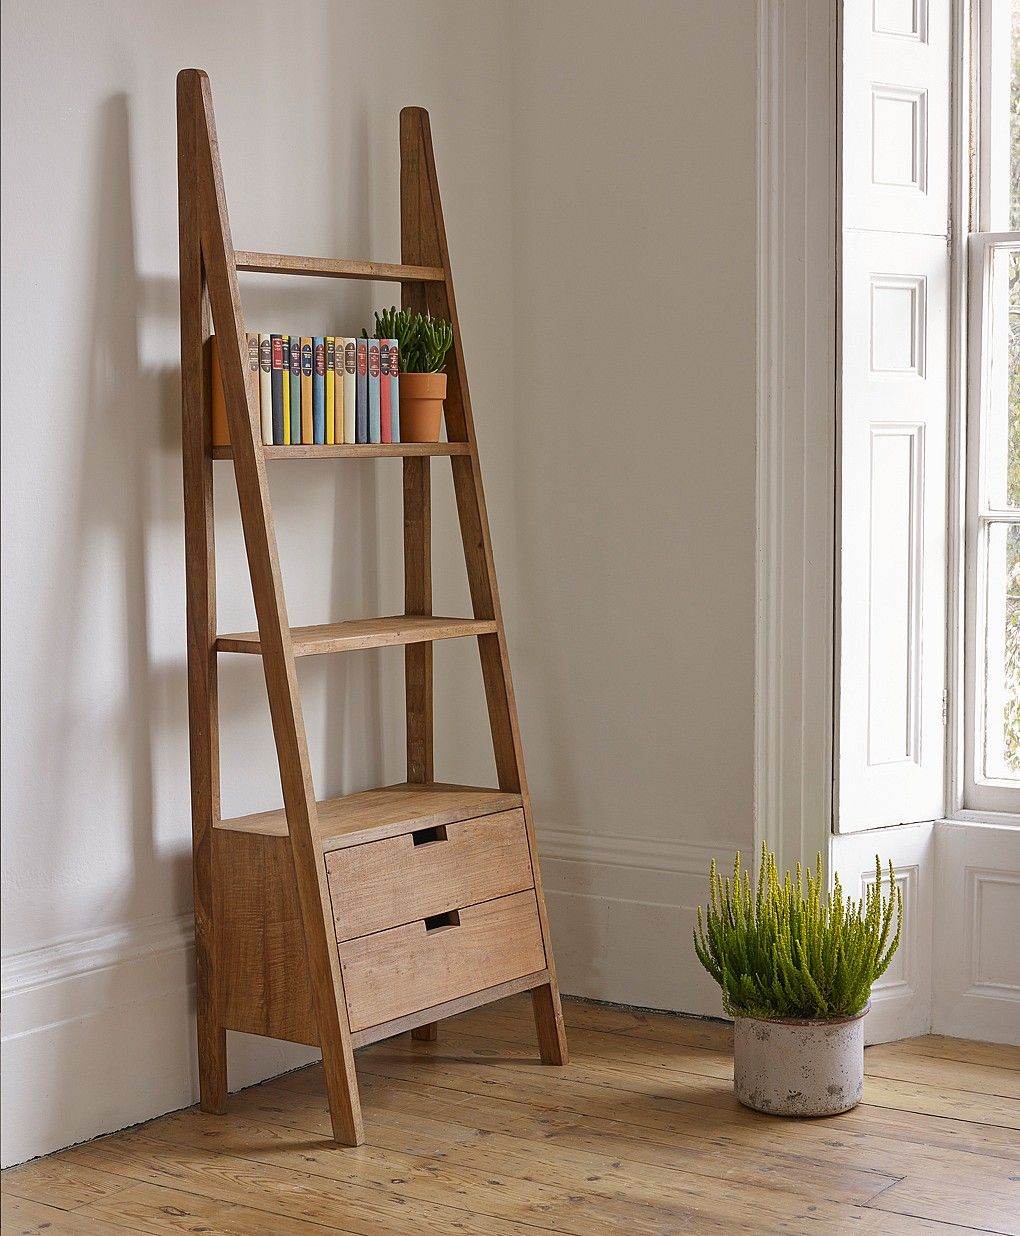 Solid Wood Ladder Book Shelfe With Two Storage Drawers And Also Four  Tier Shelf On White Painted Wall Along With Modern Style Ladder Shelf